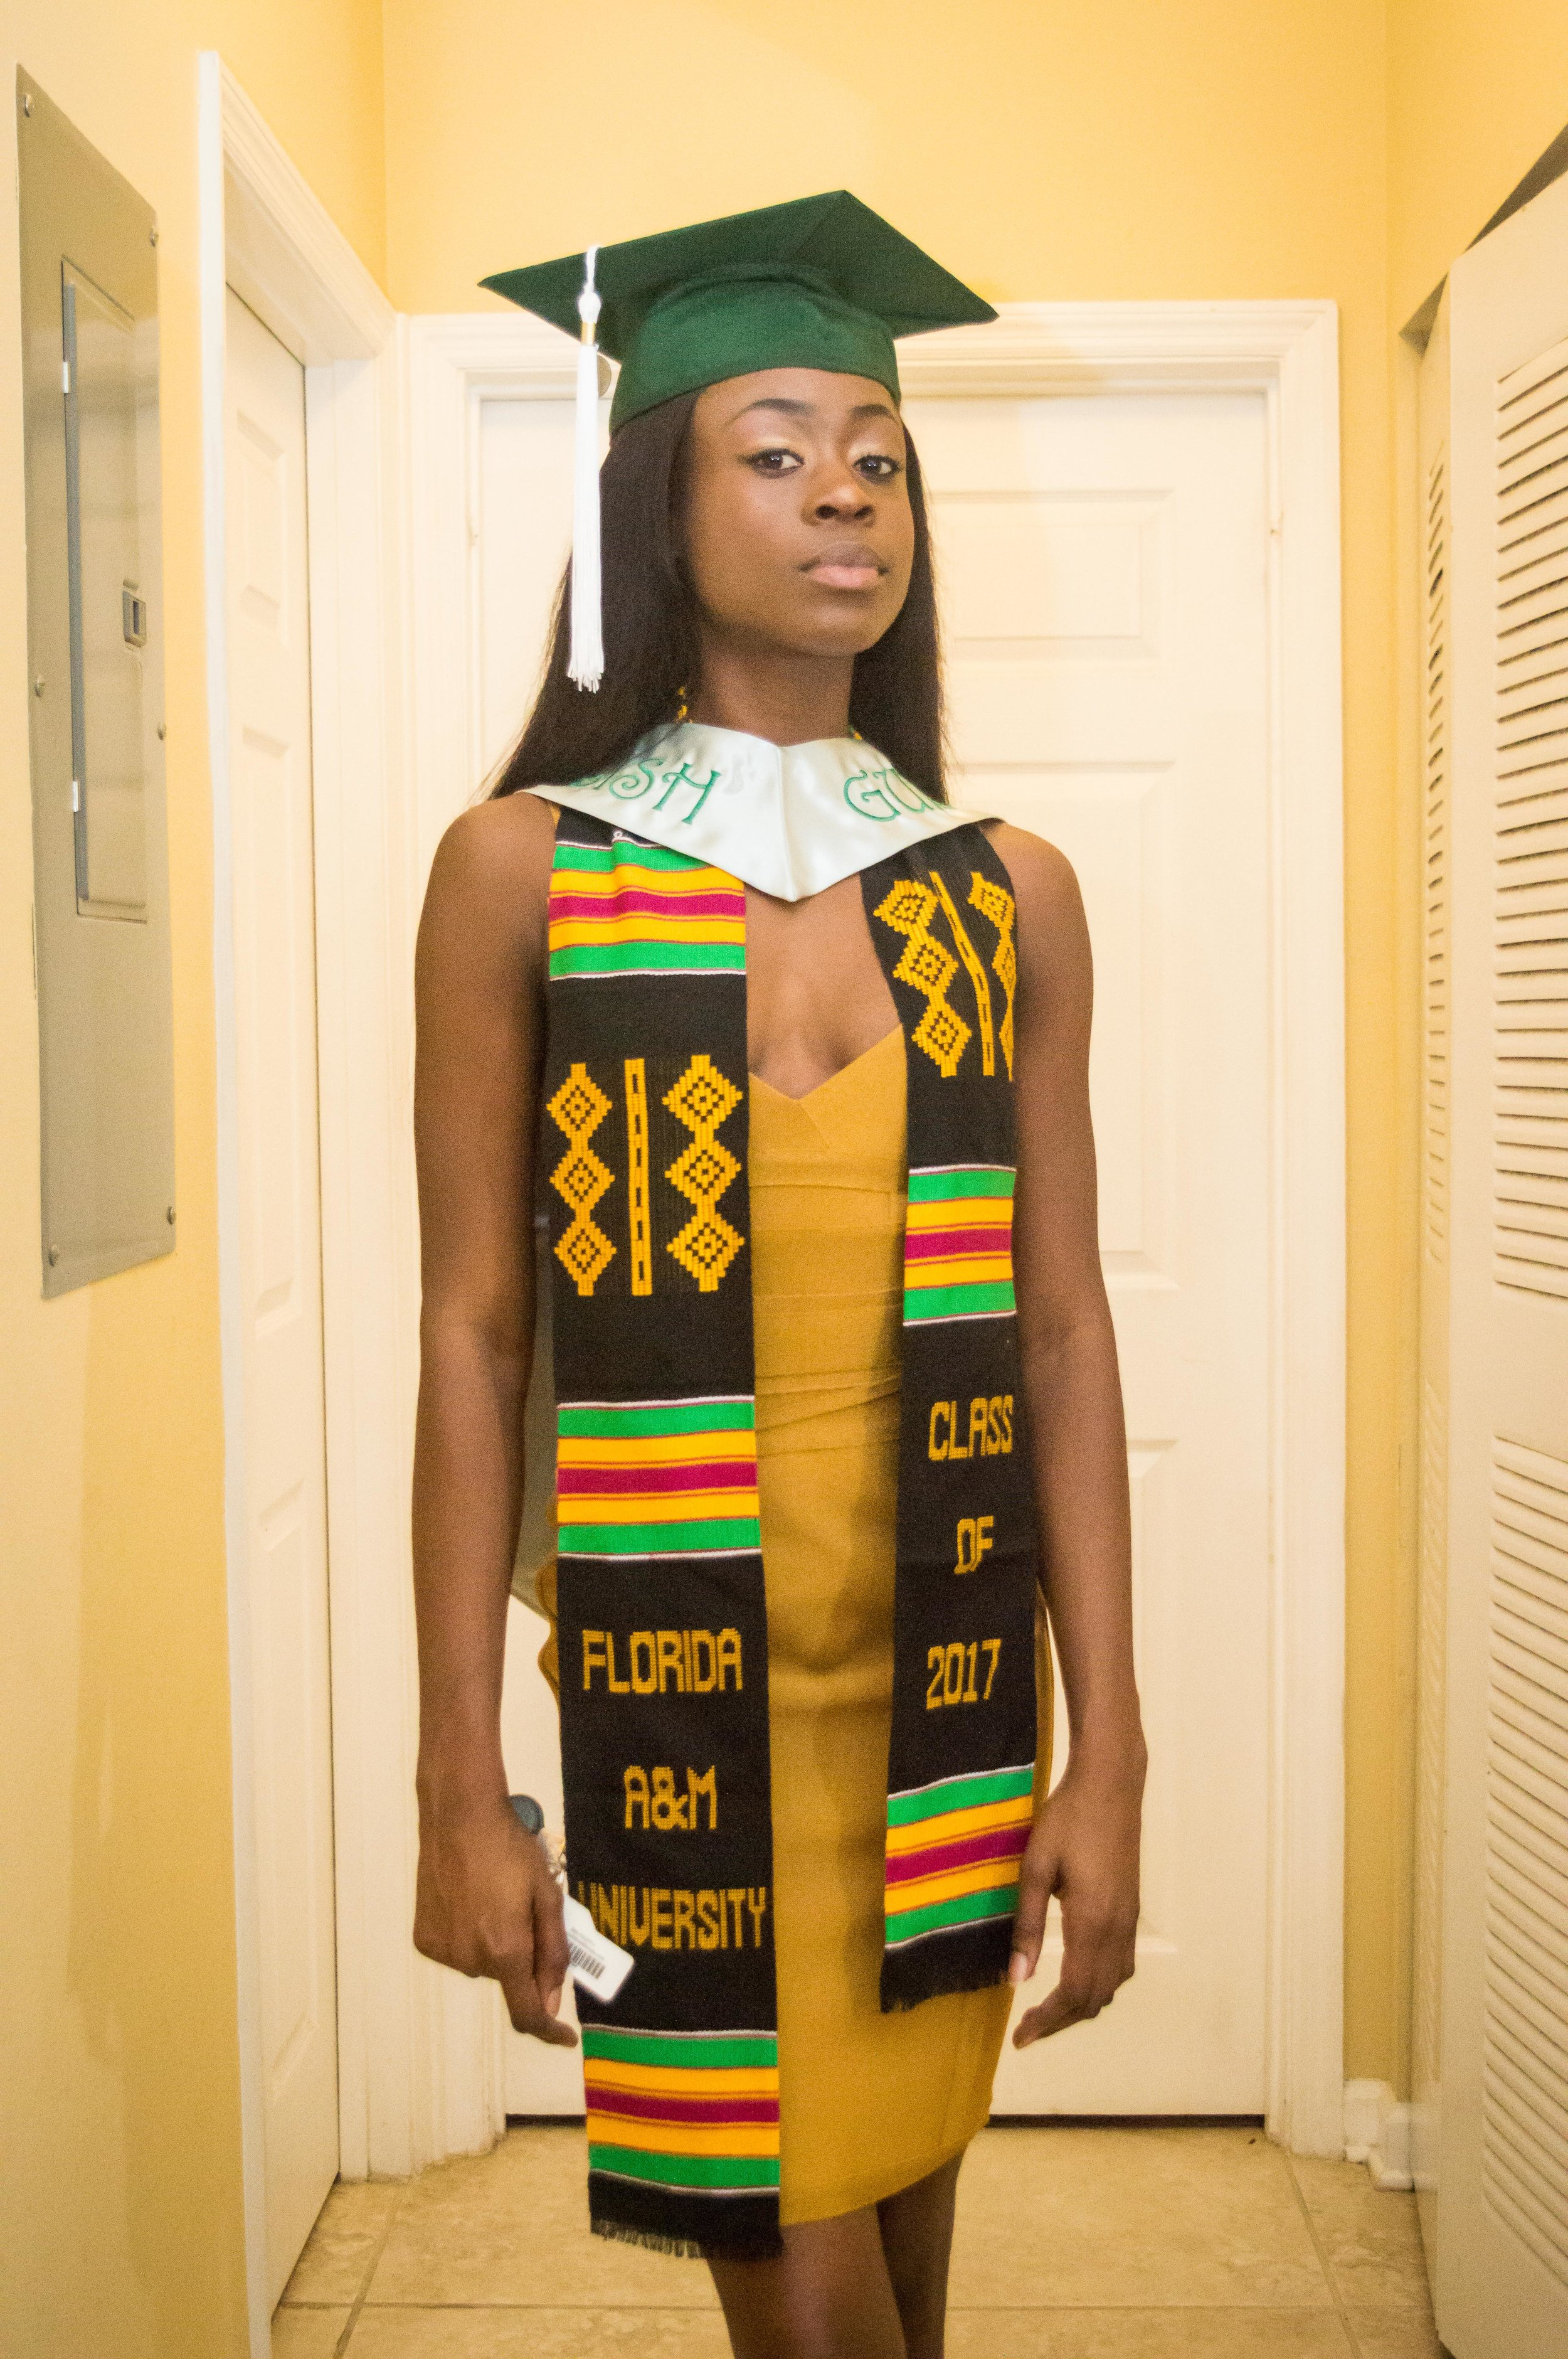 While shooting Tima getting ready, we got a pleasant surprise in the form of one of our loyal clients Maylore, here to head to graduation as well. -